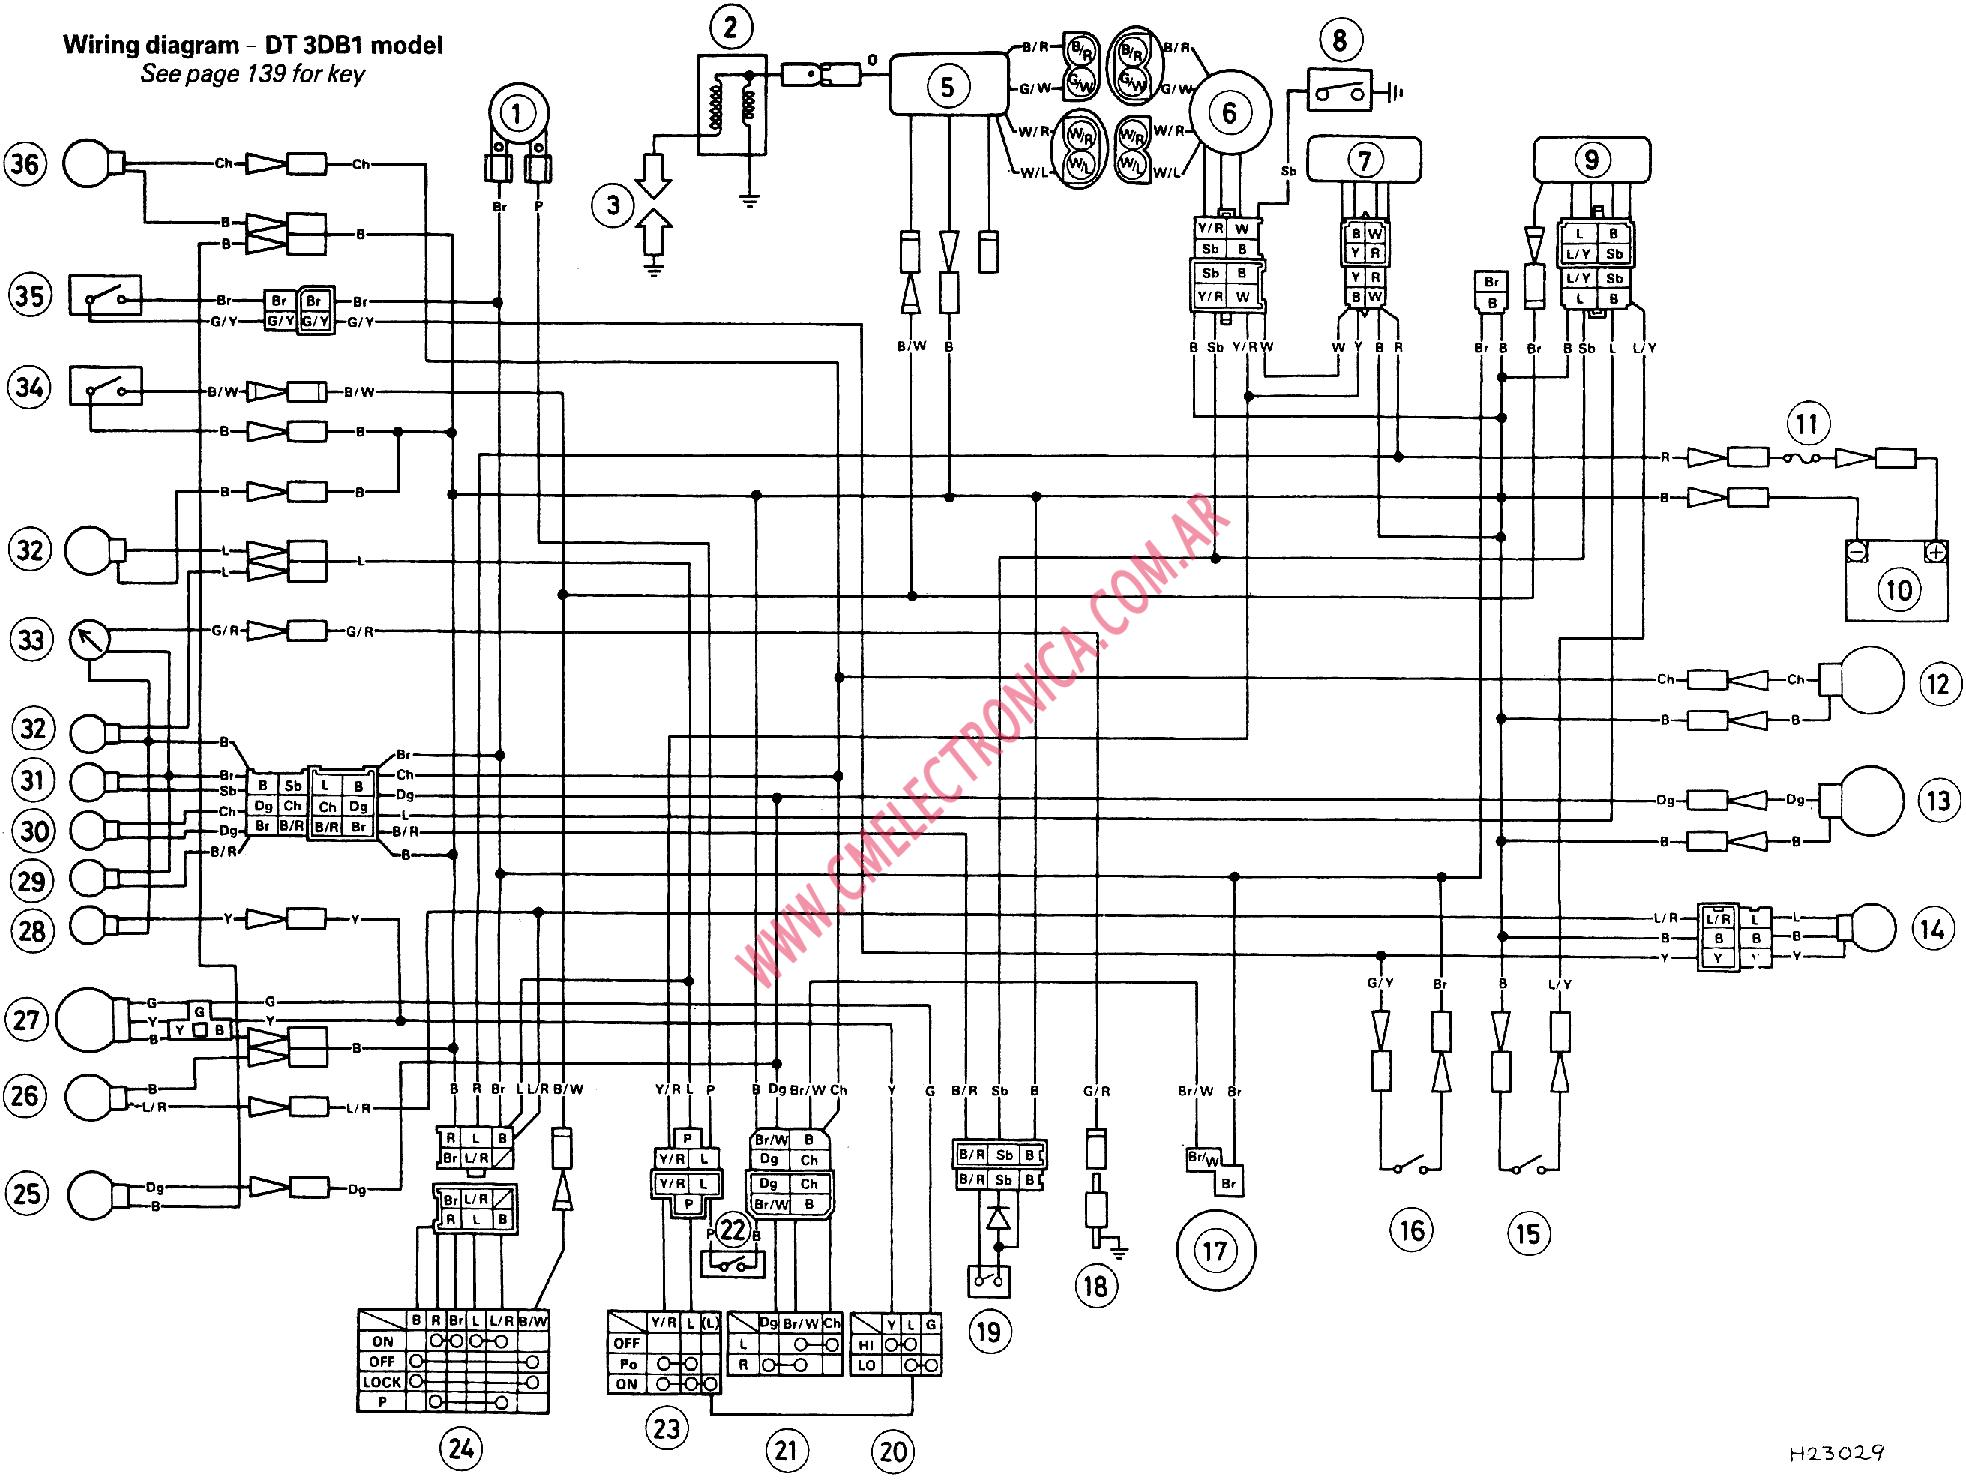 1979 Yamaha 250 Wiring Diagram Guide And Troubleshooting Of Xs1100 Free Picture Schematic Xt350 Auto Xs650